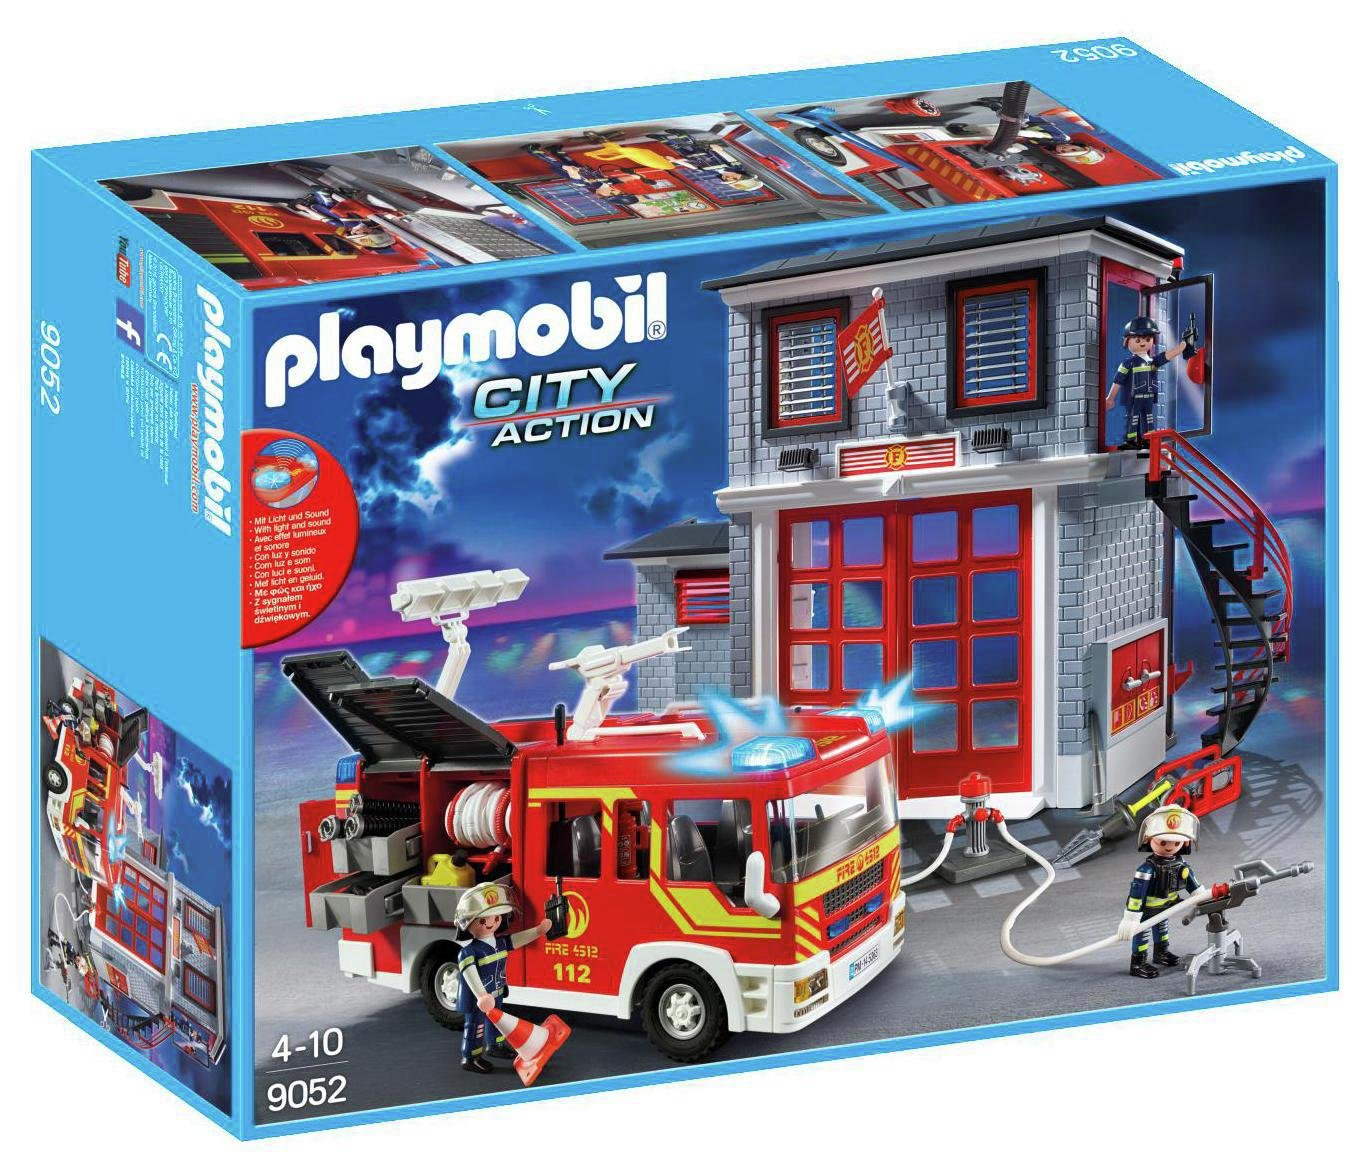 Playmobil 9052 City Action Fire Station Super Set